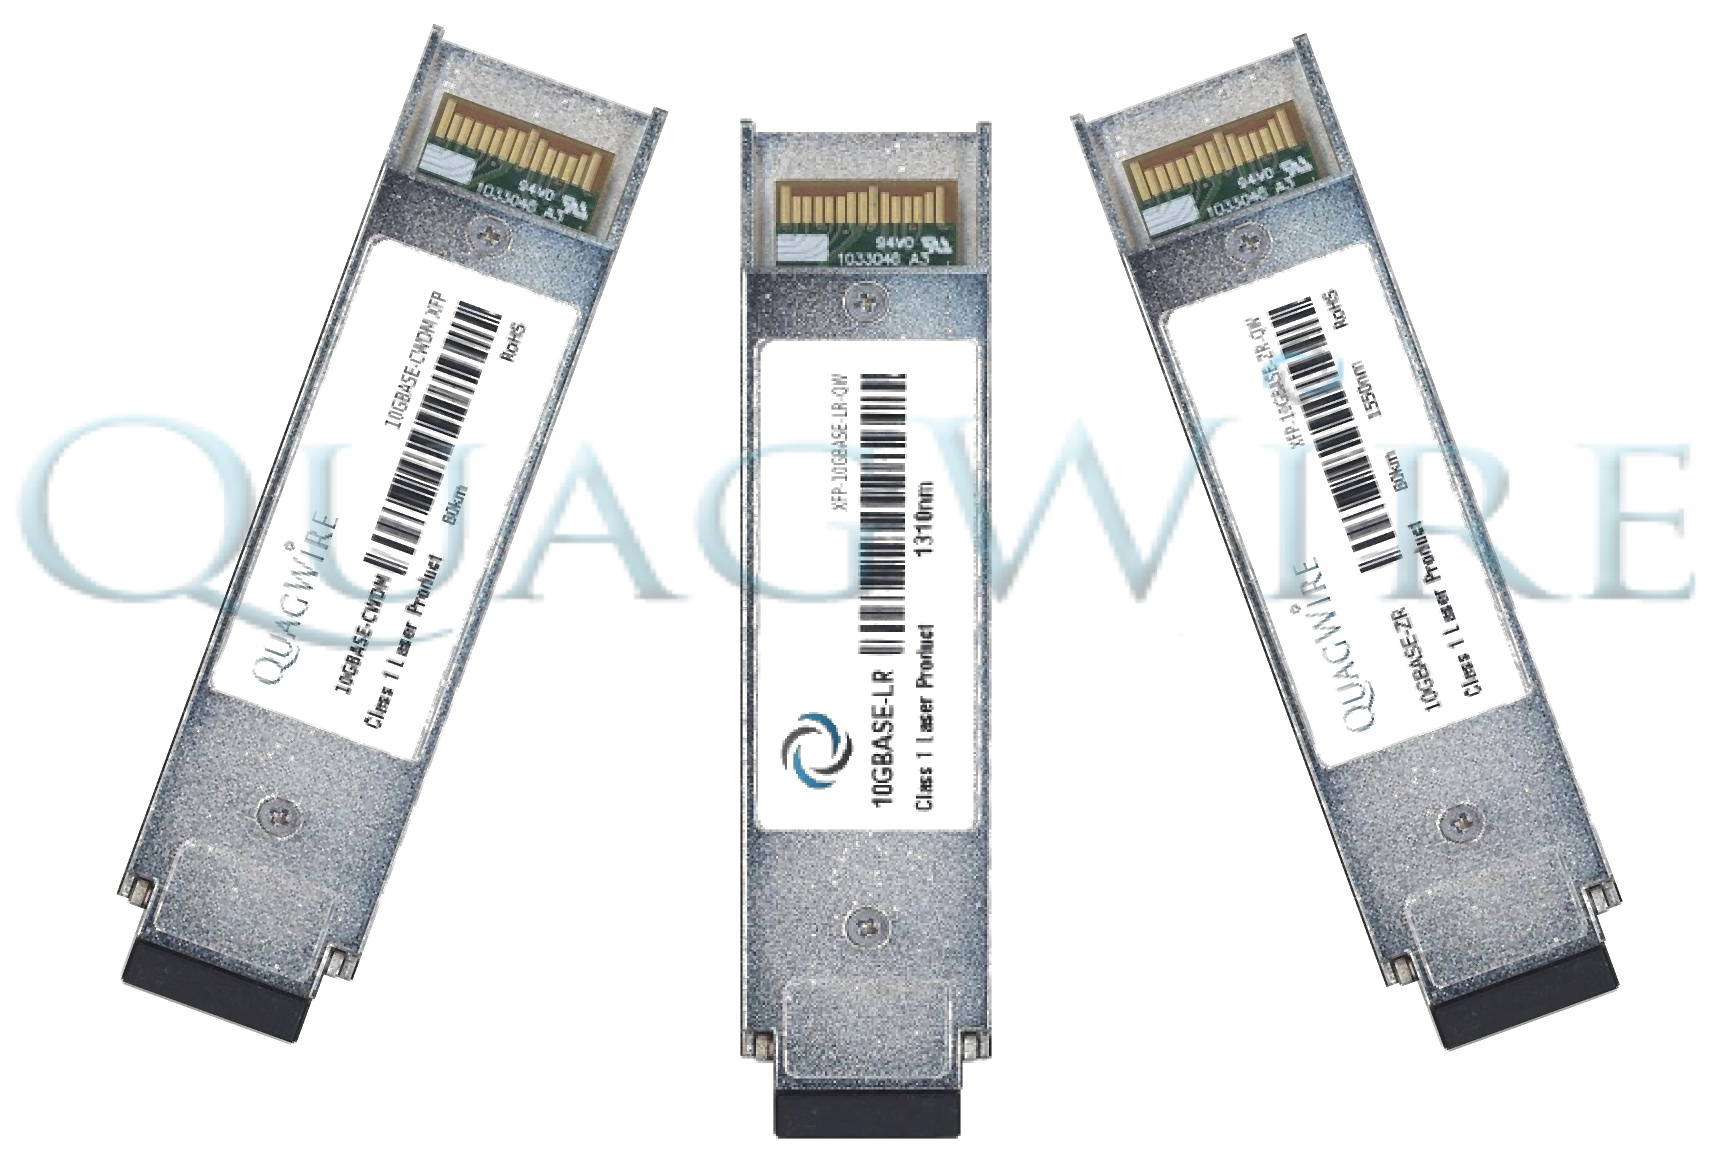 JD507A-QW | HP 10GBASE-ER 1550nm 40km XFP Transceiver